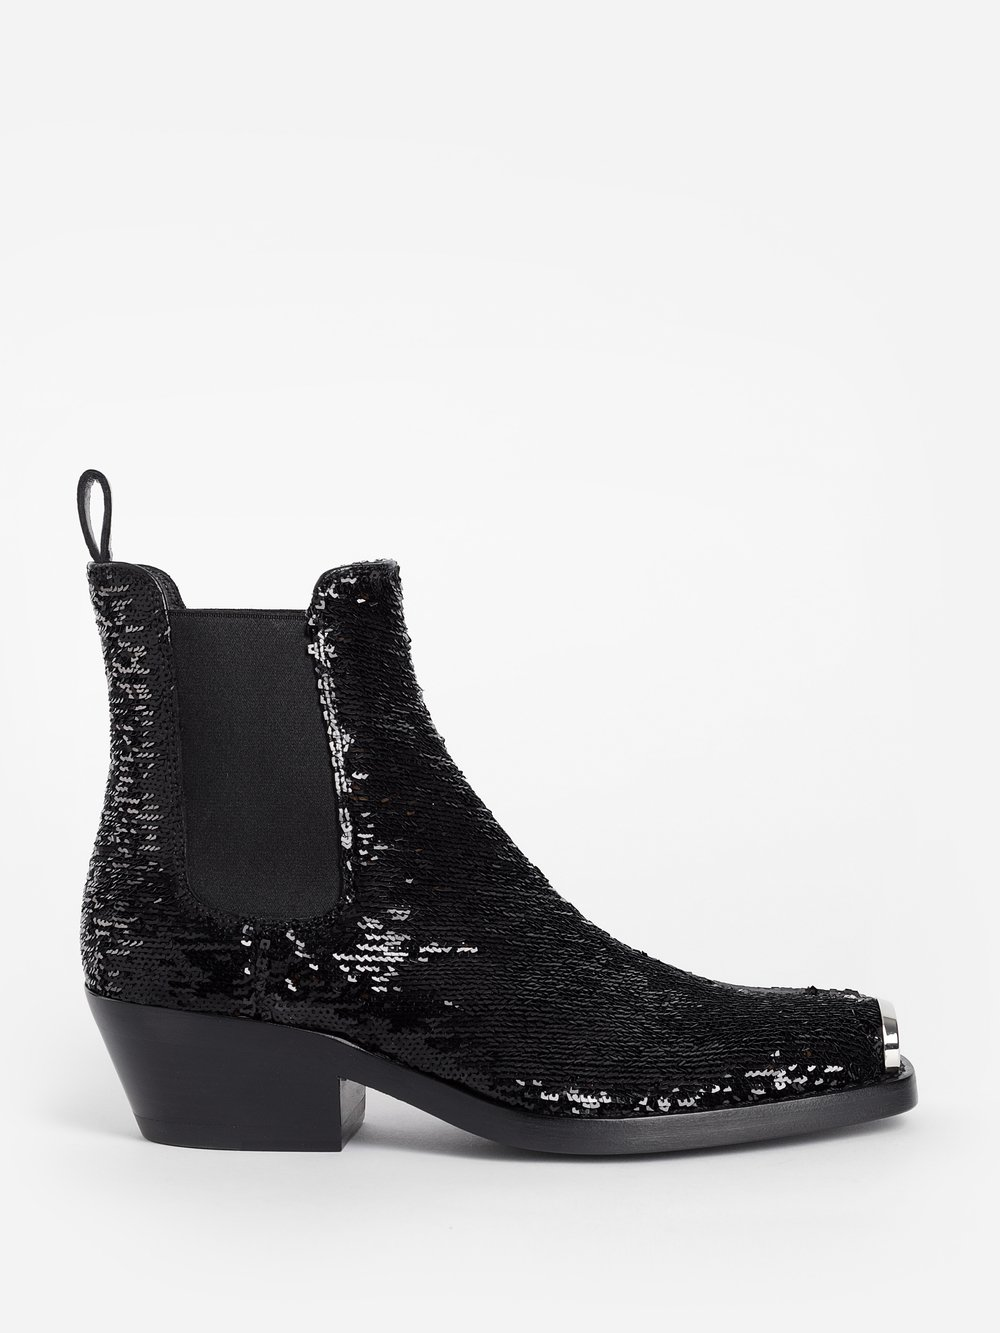 Image of Calvin Klein 205W39NYC Boots